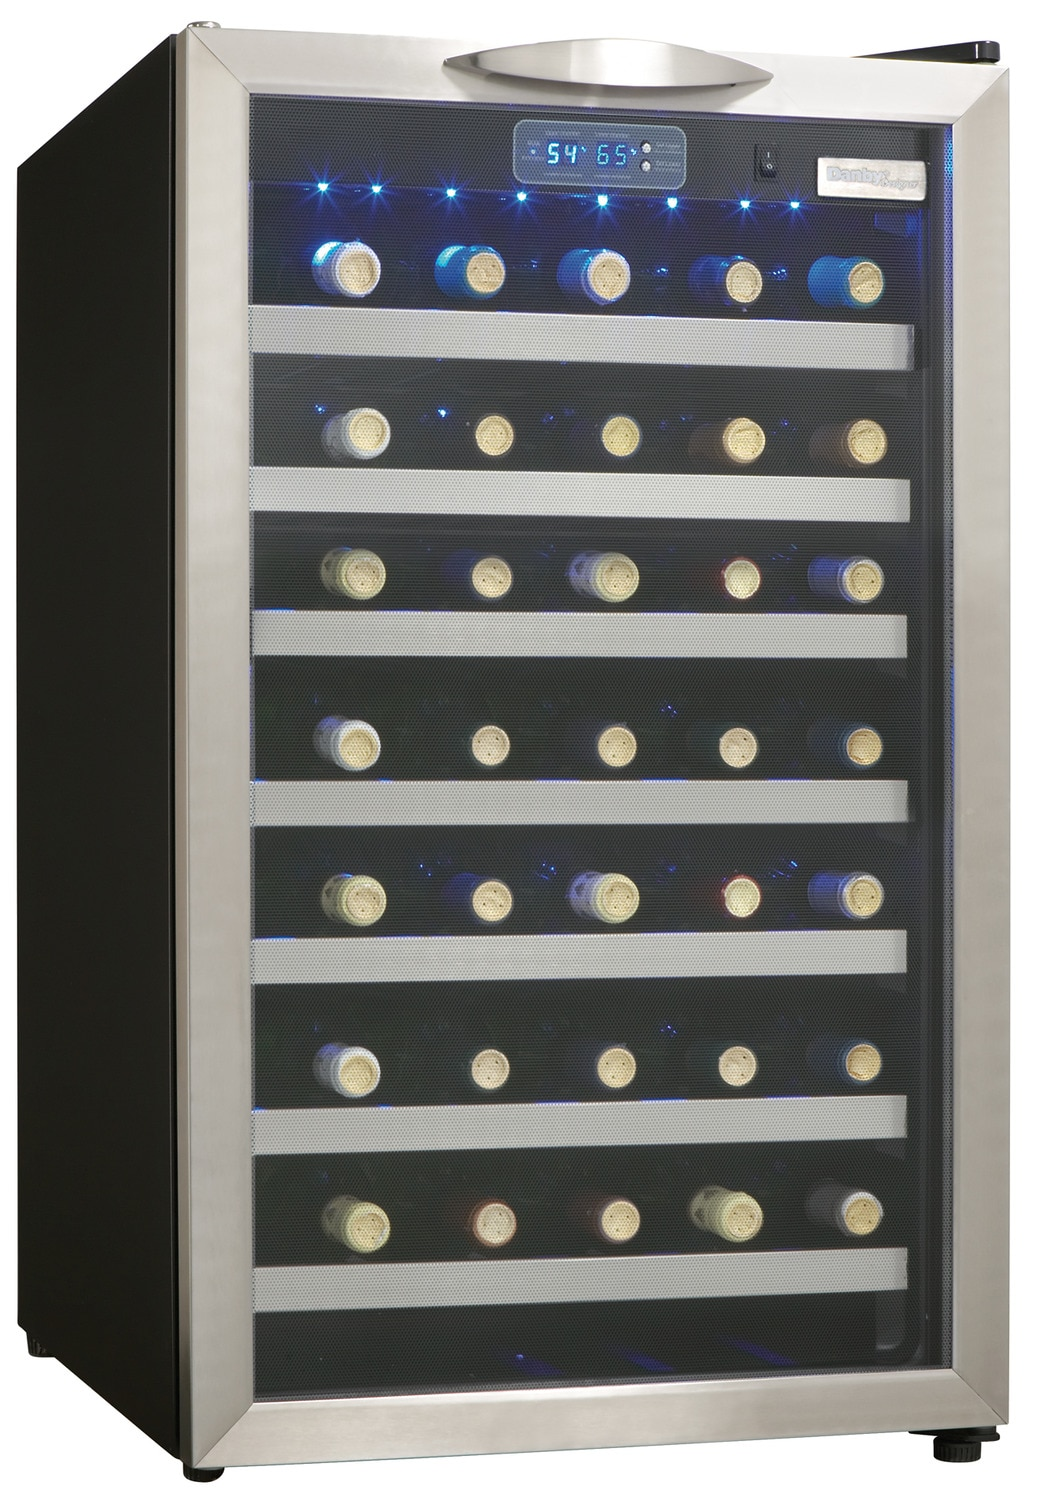 Danby Stainless Steel Wine Cooler (4 Cu. Ft.) - DWC458BLS